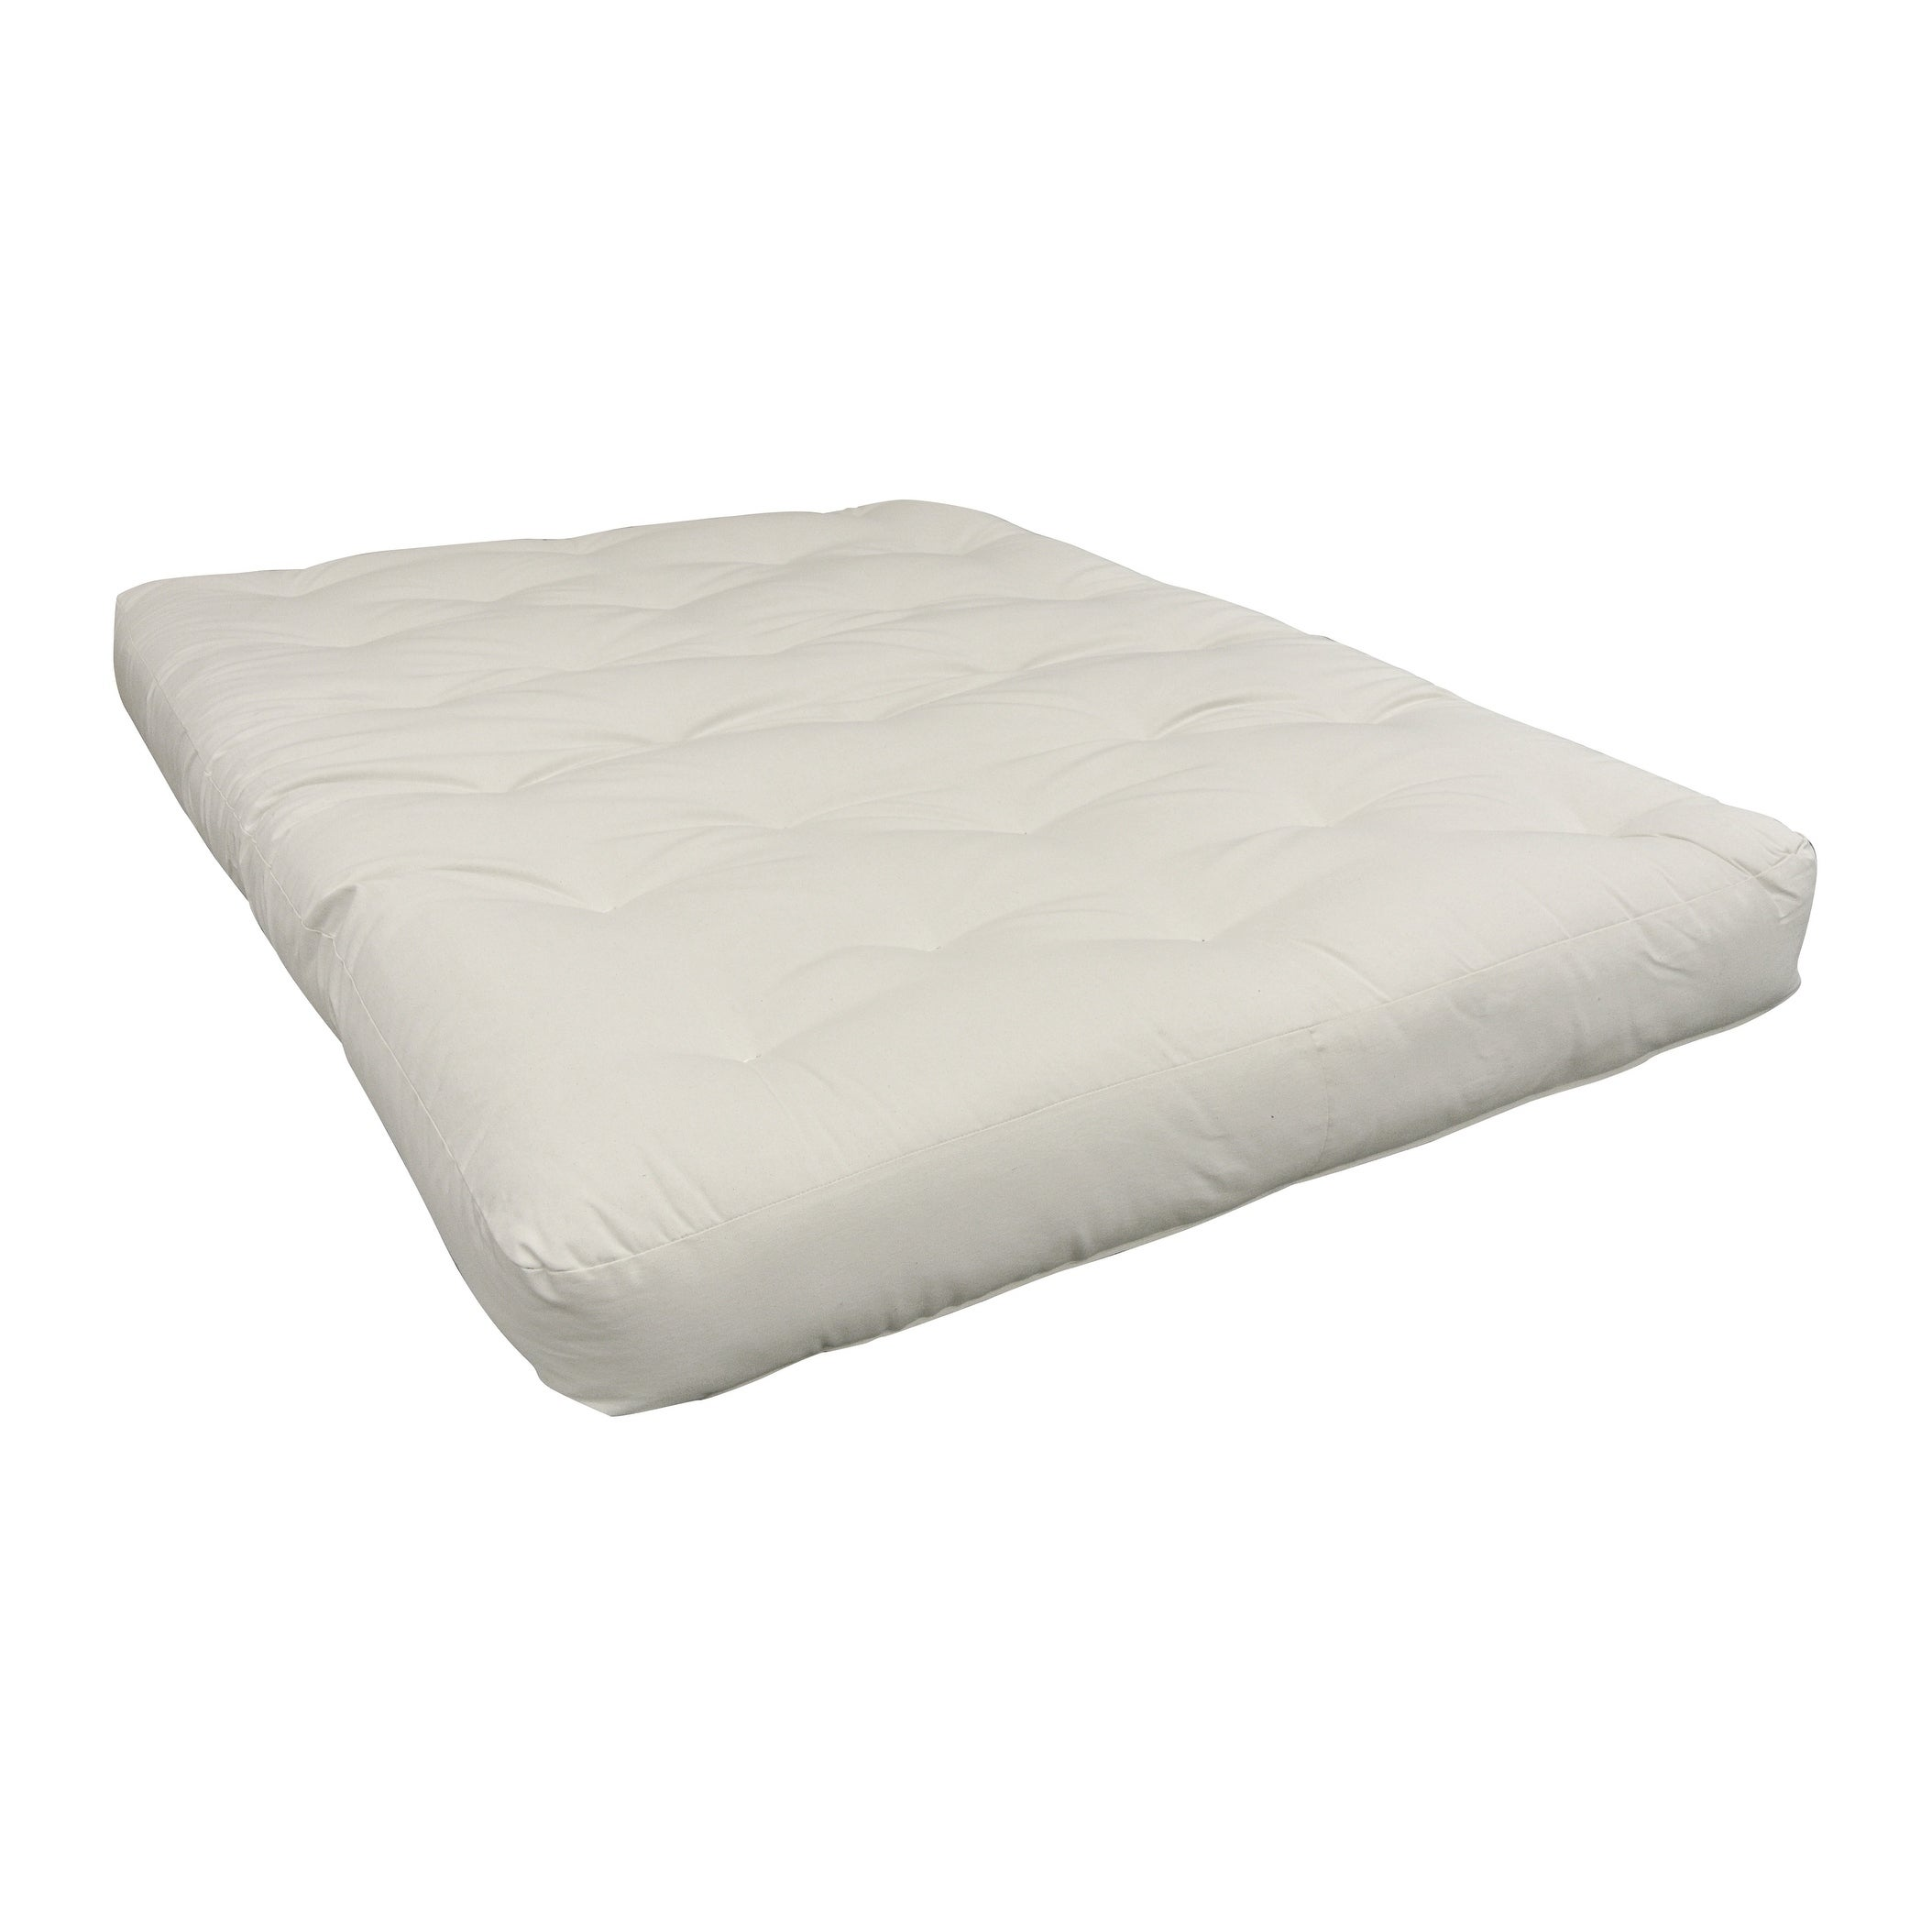 10 Double Foam Cotton Twin Natural Futon Mattress